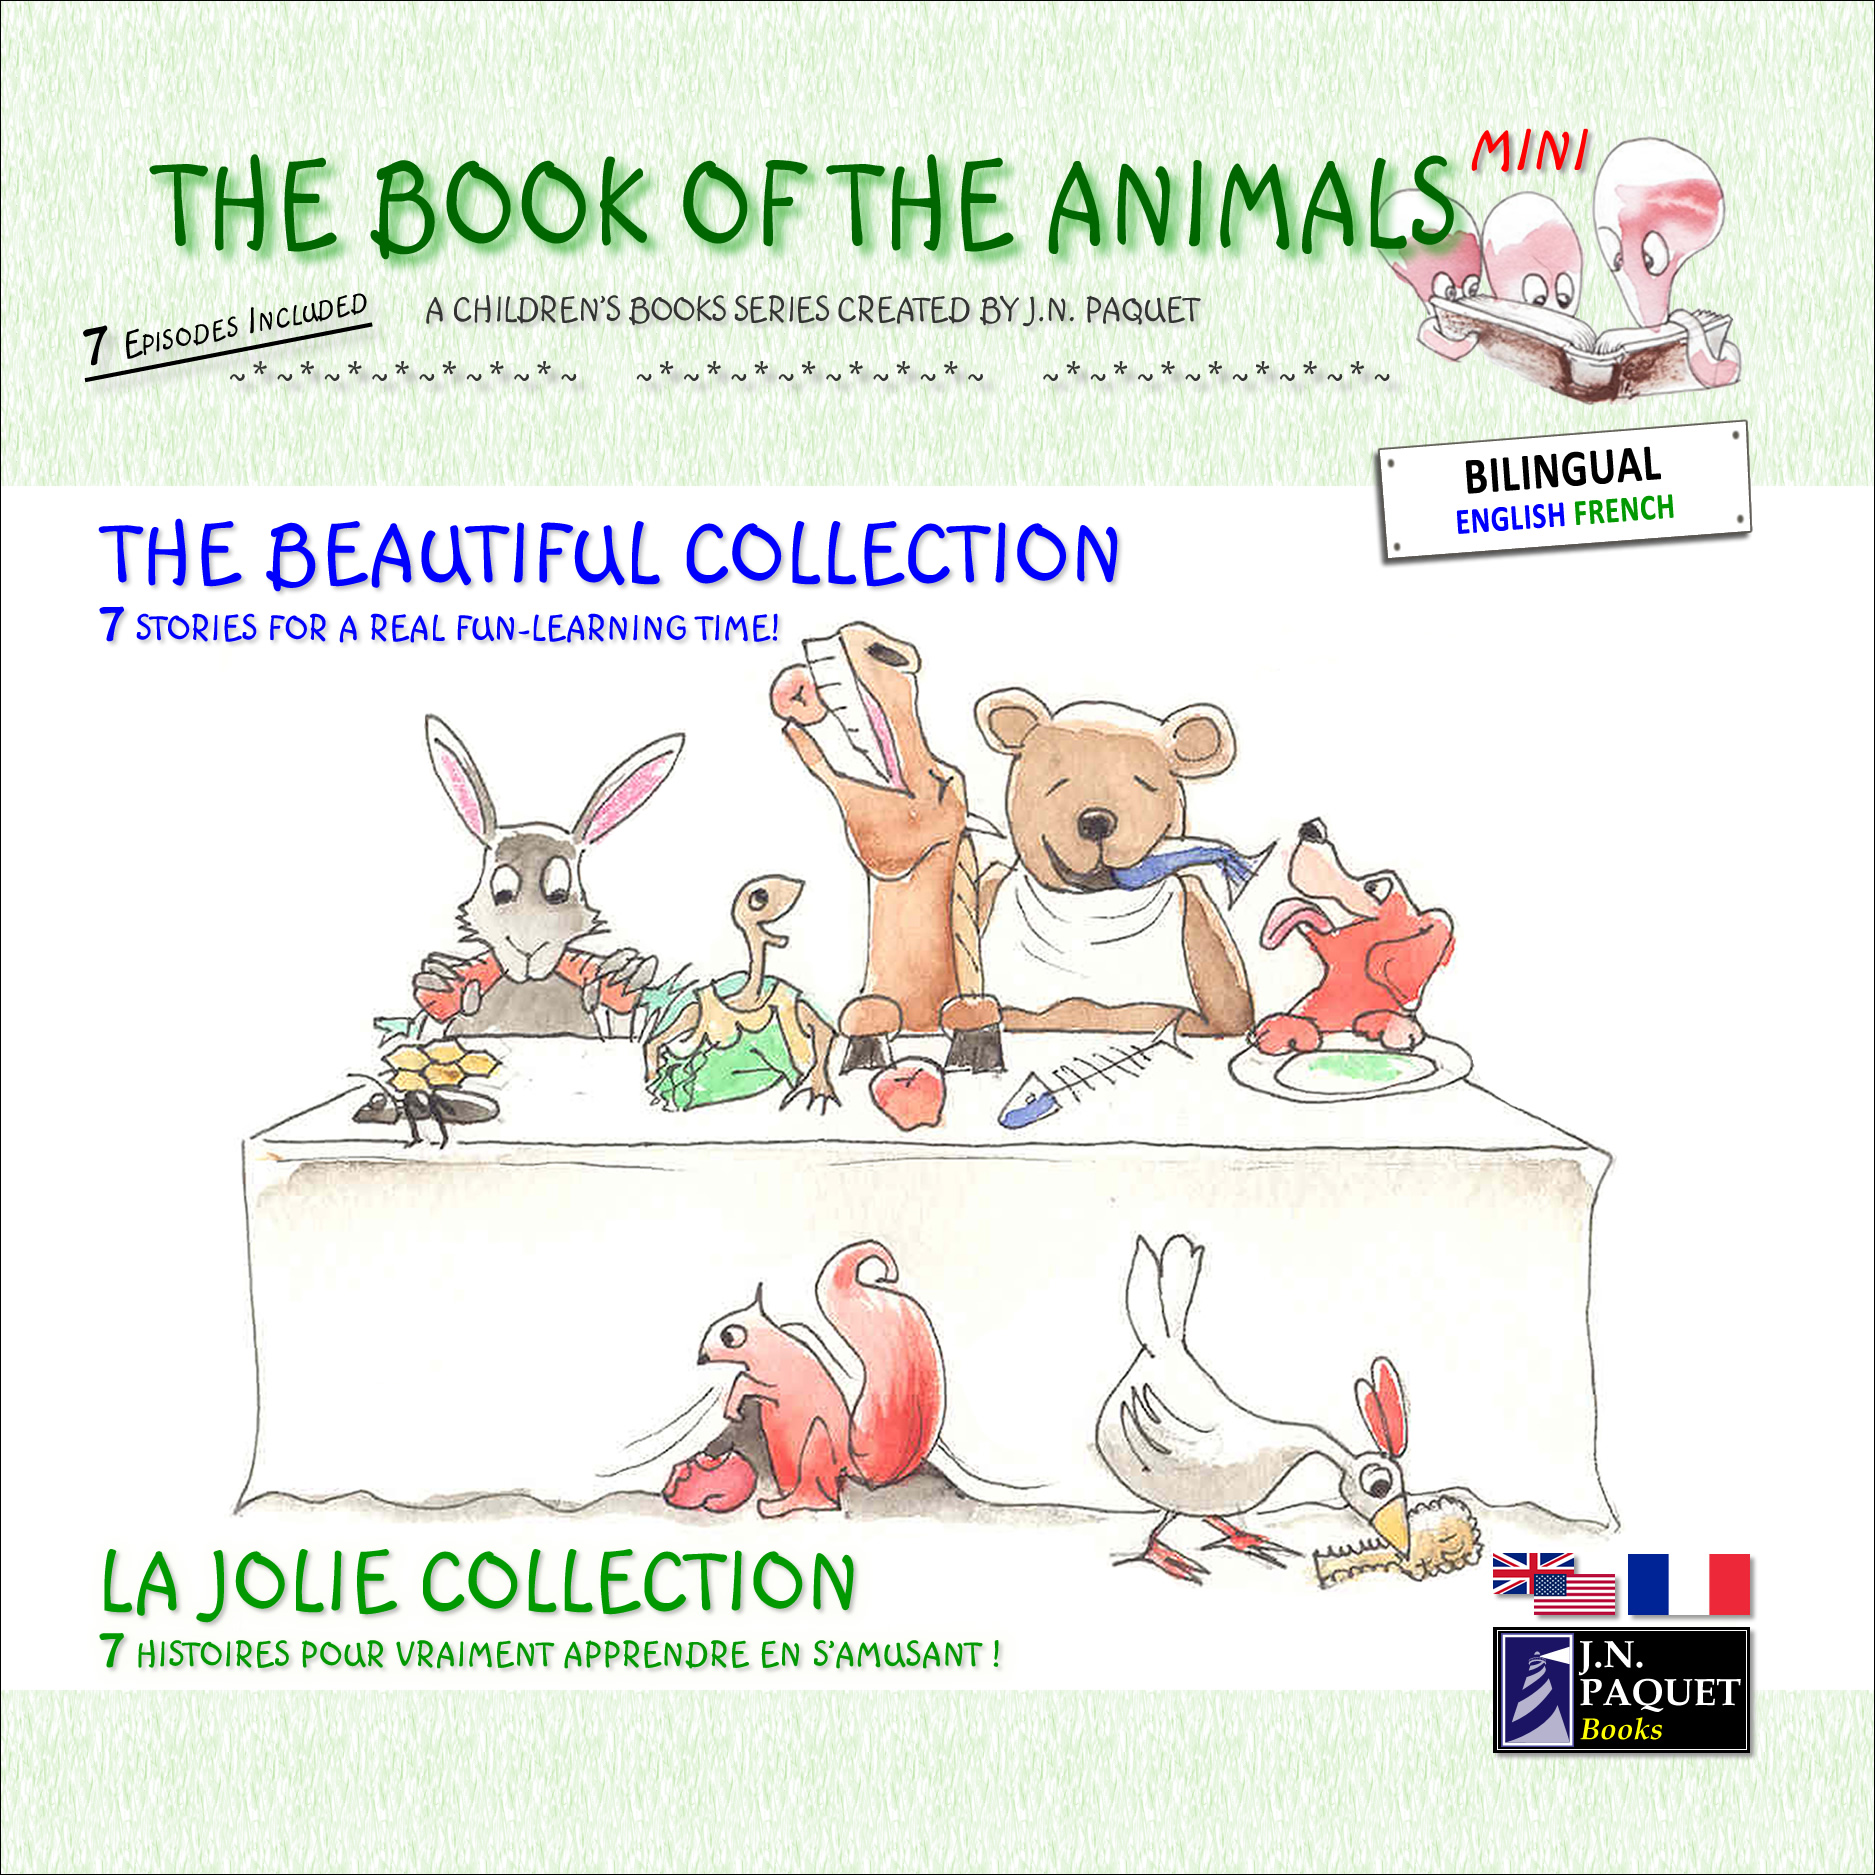 The Book of The Animals - Mini - The Beautiful Collection (Bilingual English-French)